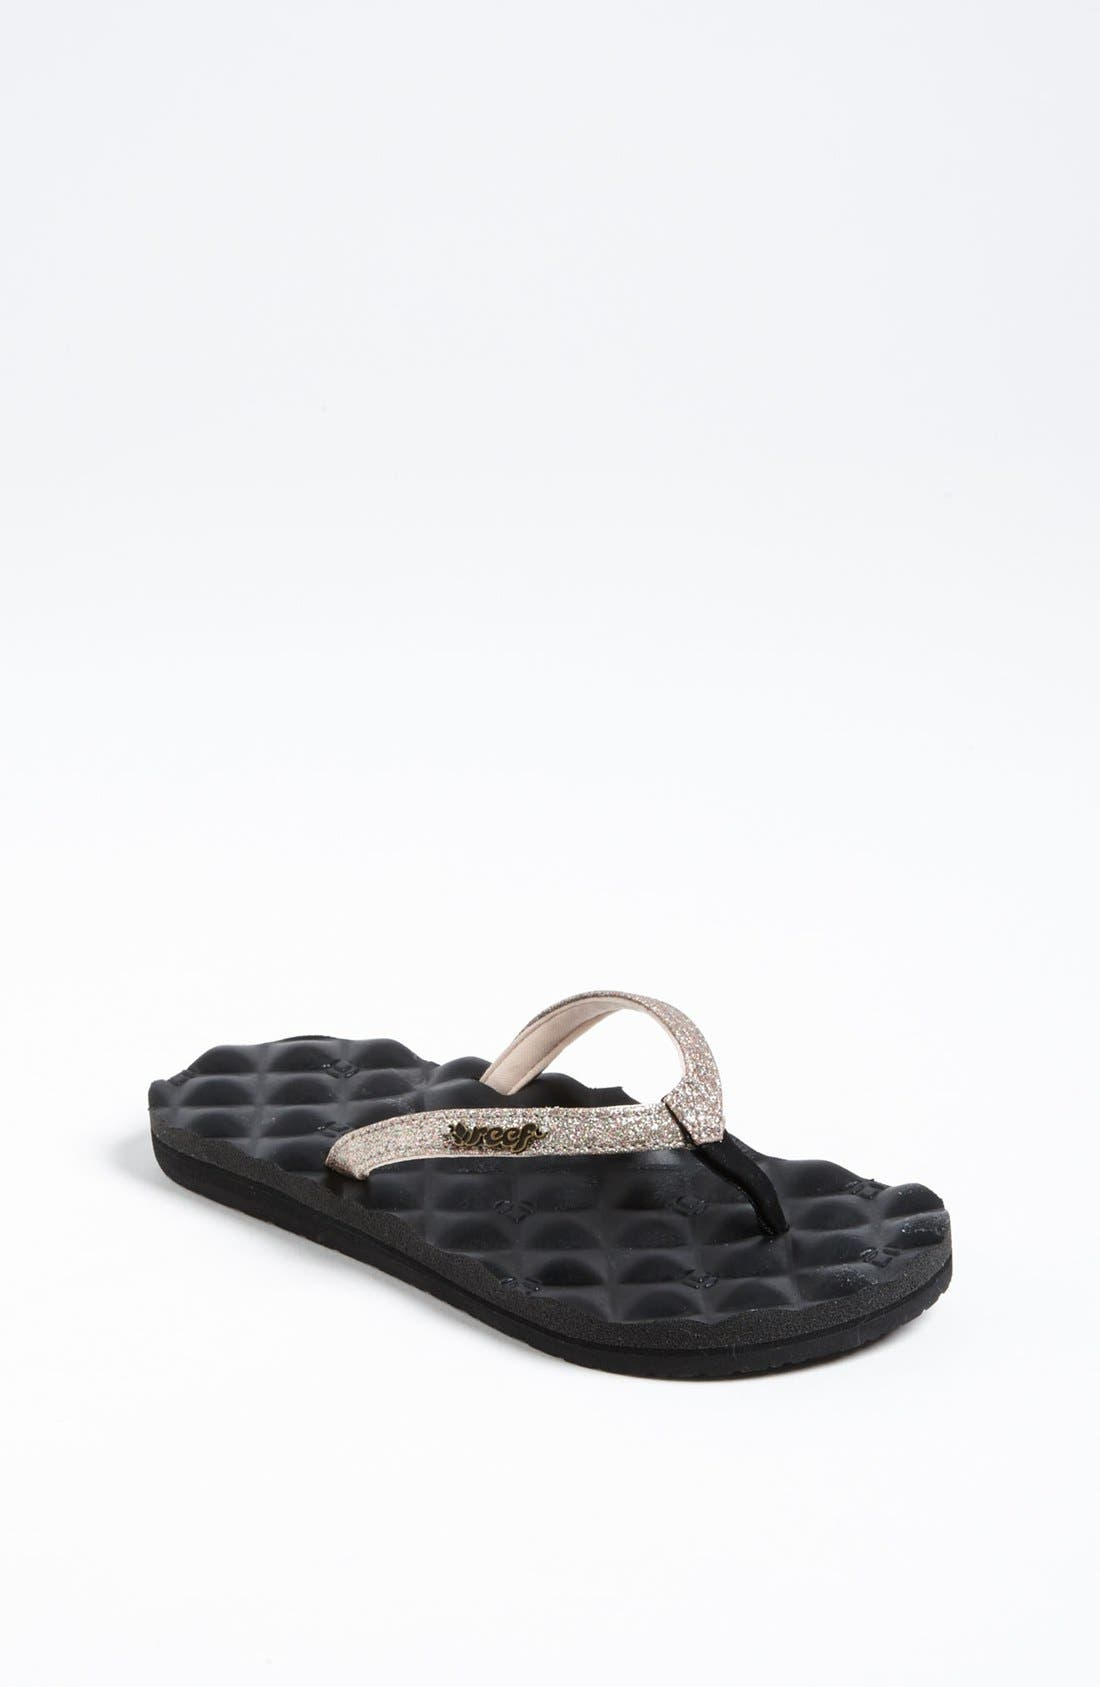 Main Image - Reef 'Little Reef Star Dreams' Sandal (Baby, Walker, Toddler, Little Kid & Big Kid)